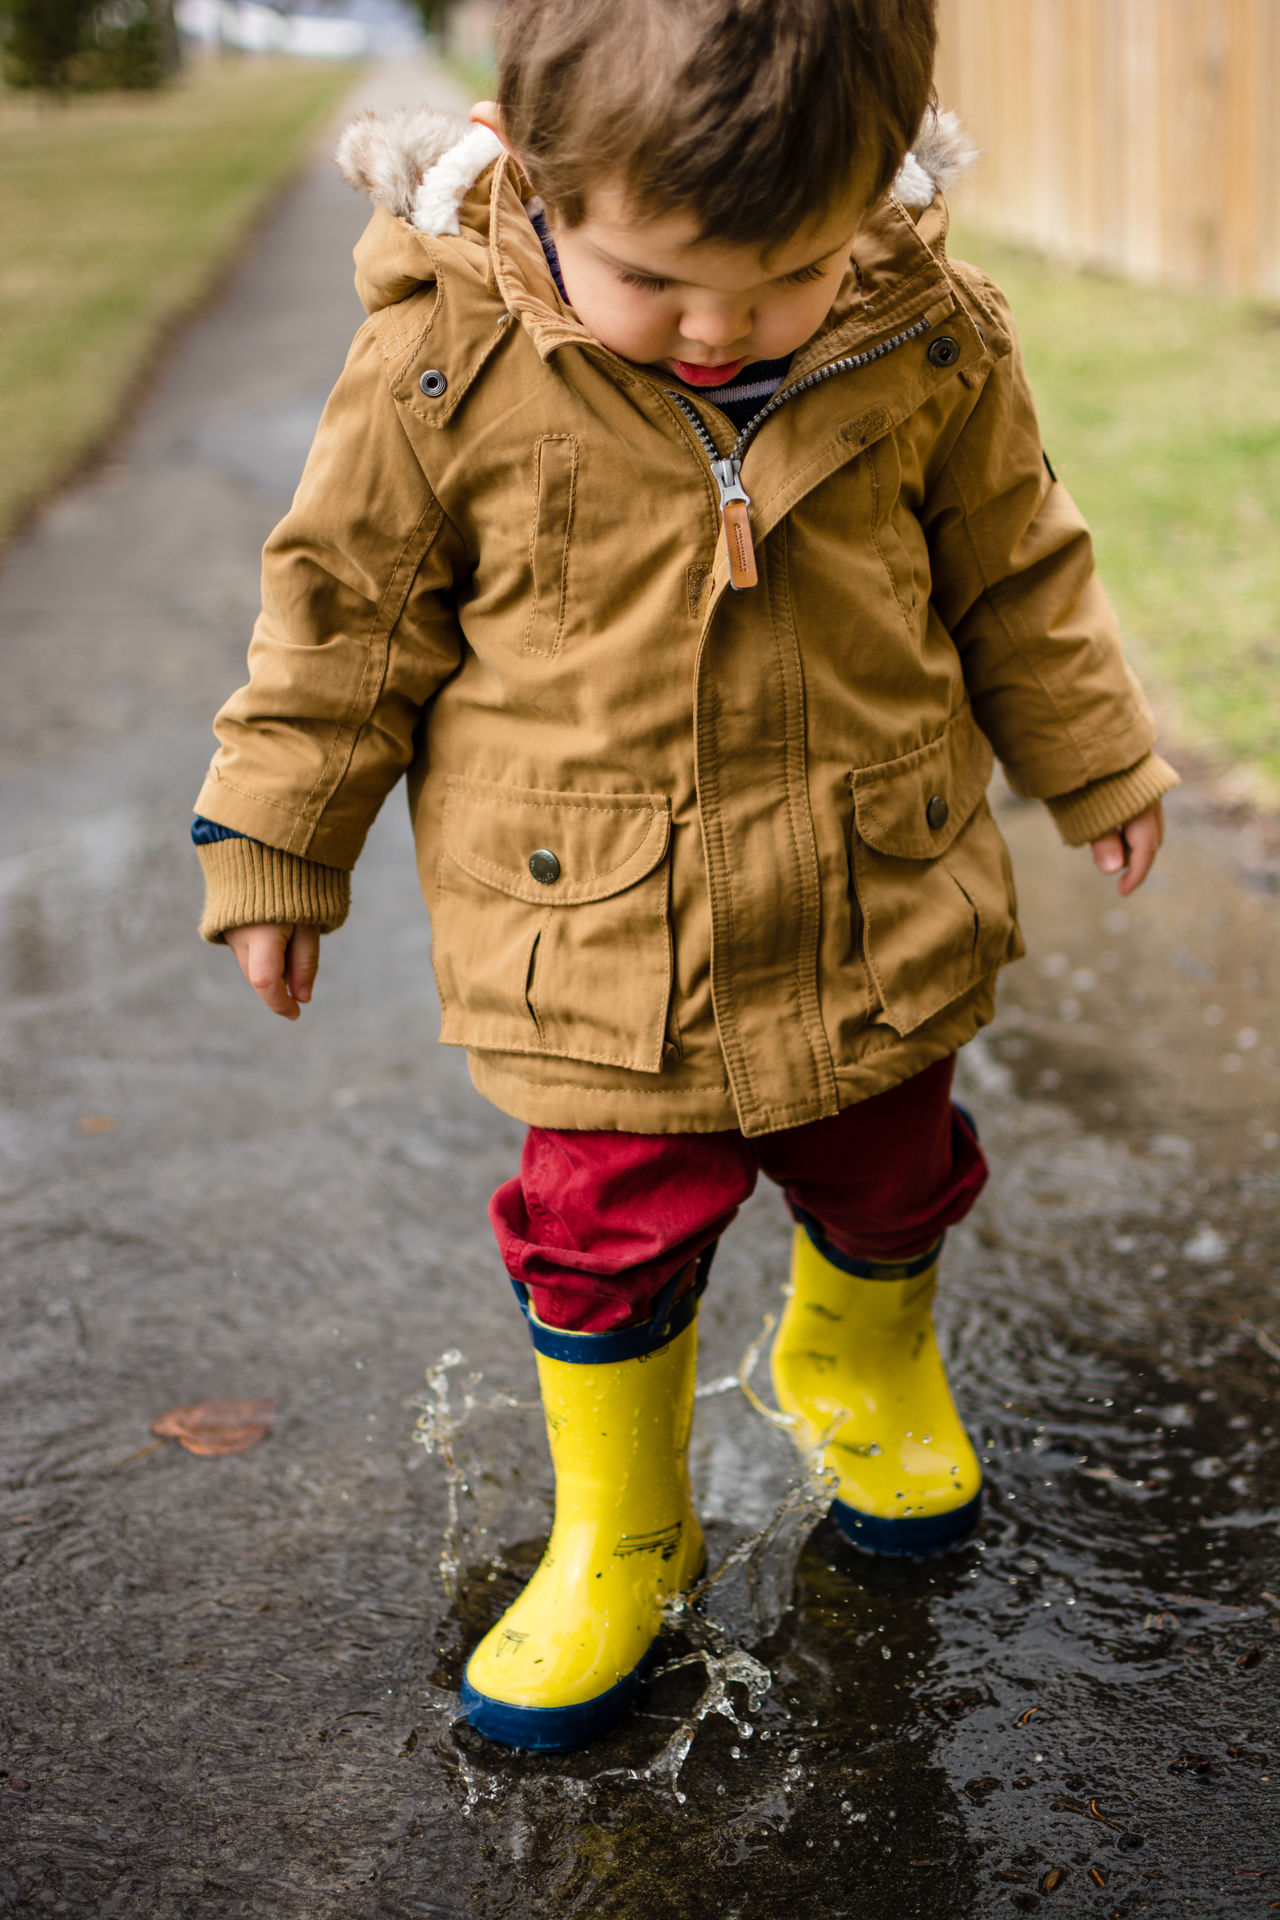 Little boy having fun in a rain puddle Boy Casual Clothing Child Childhood Day Fun Gumboots Jacket Lifestyles Outdoors Puddle Rain Boots Rainy Reflection Season  Splash Spring Toddler  Water Wellington Boots Yellow